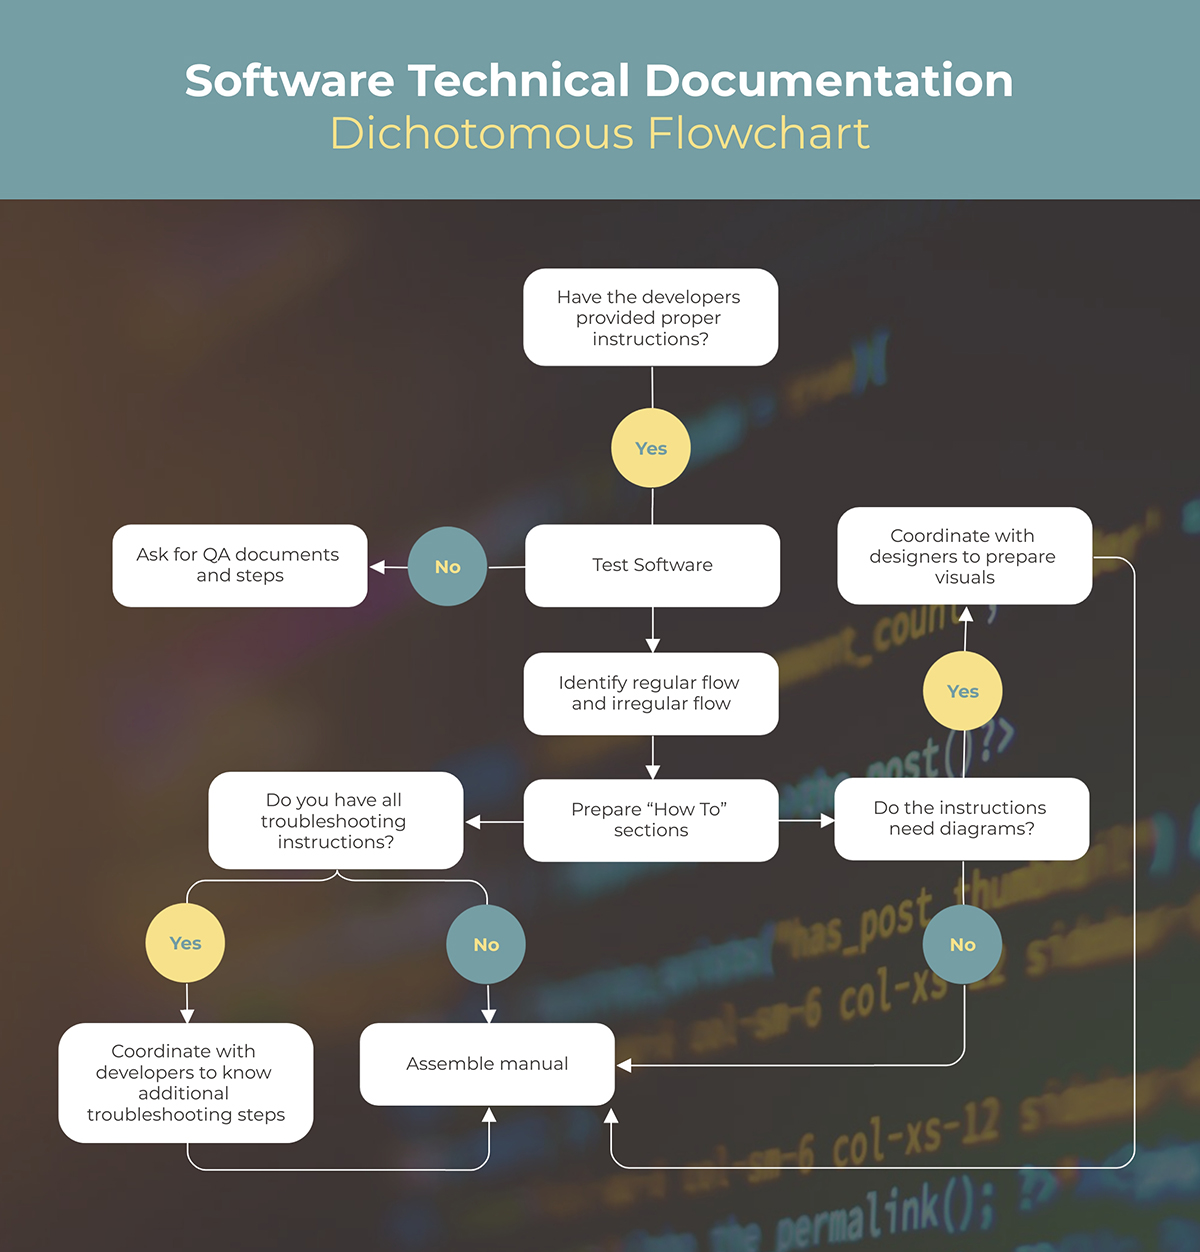 A software technical documentation flowchart template available to customize in Visme.